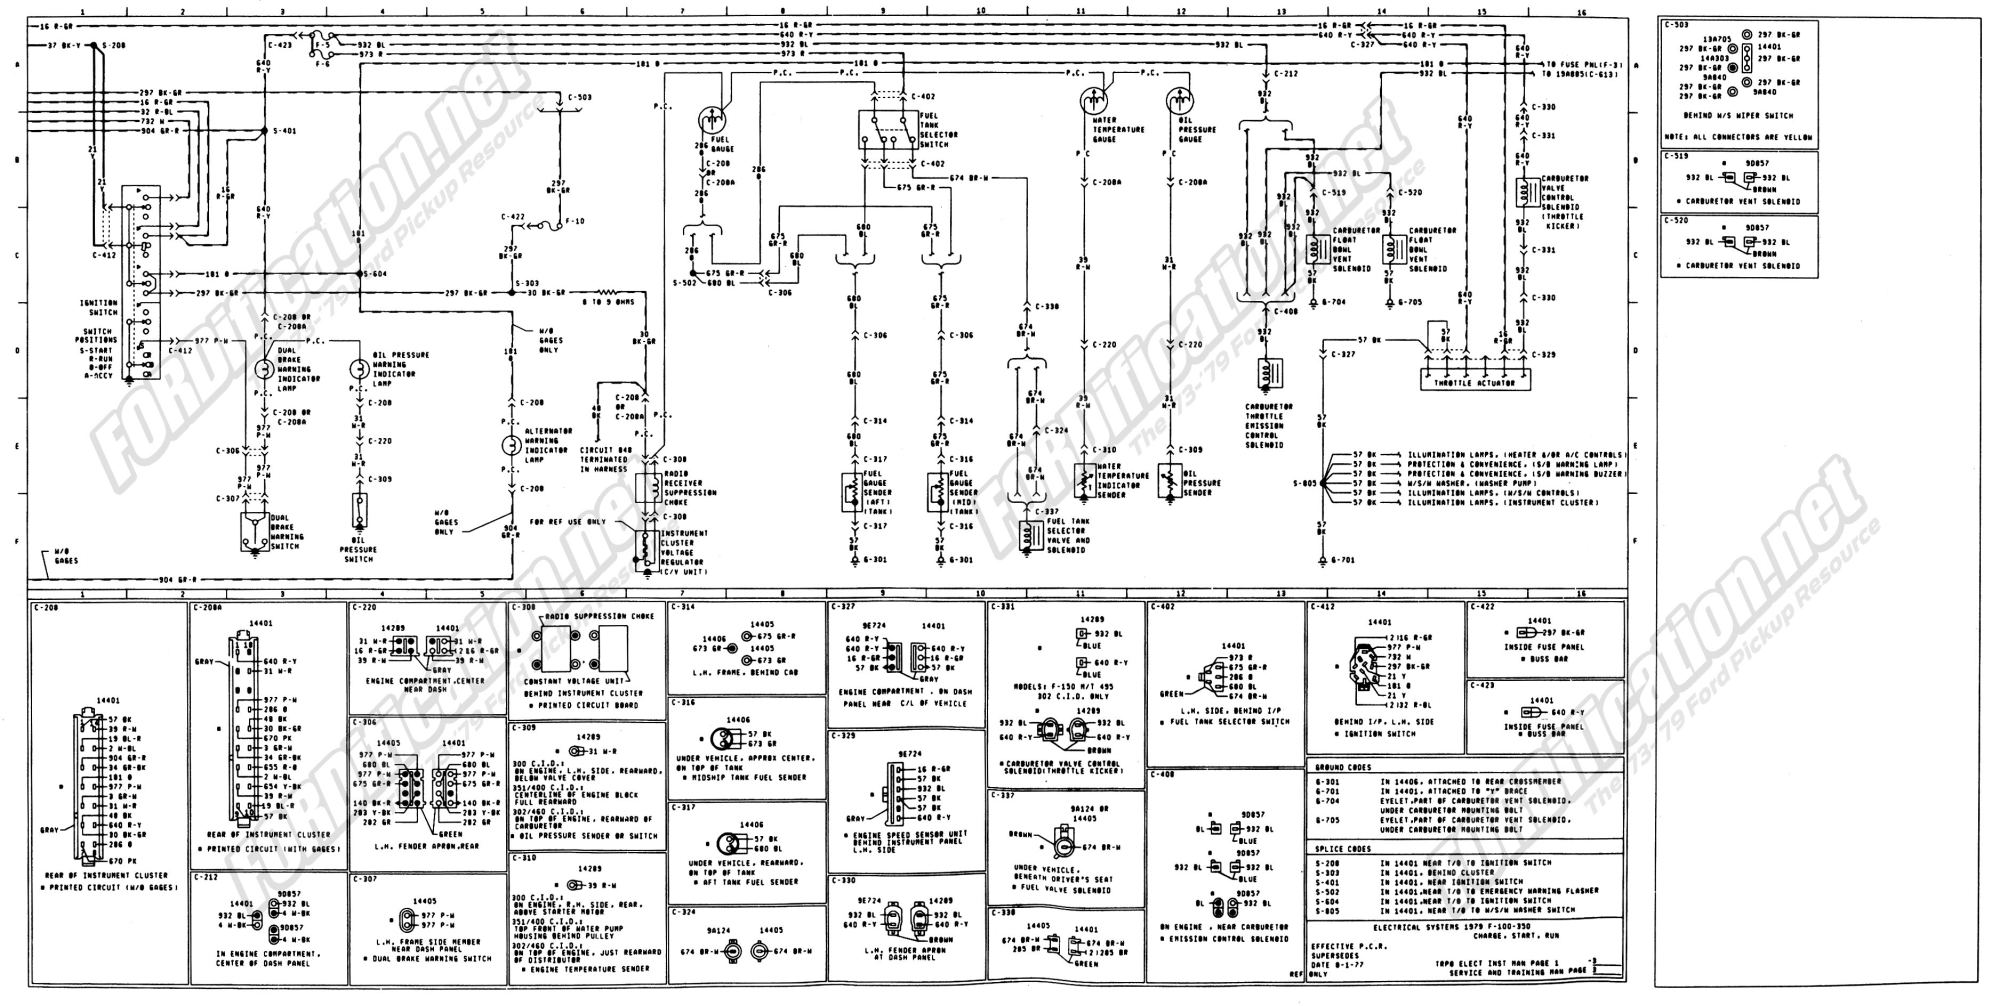 hight resolution of f250 7 3l wiring diagram 1999 detailed schematics diagram rh jvpacks com 1999 f250 1997 ford